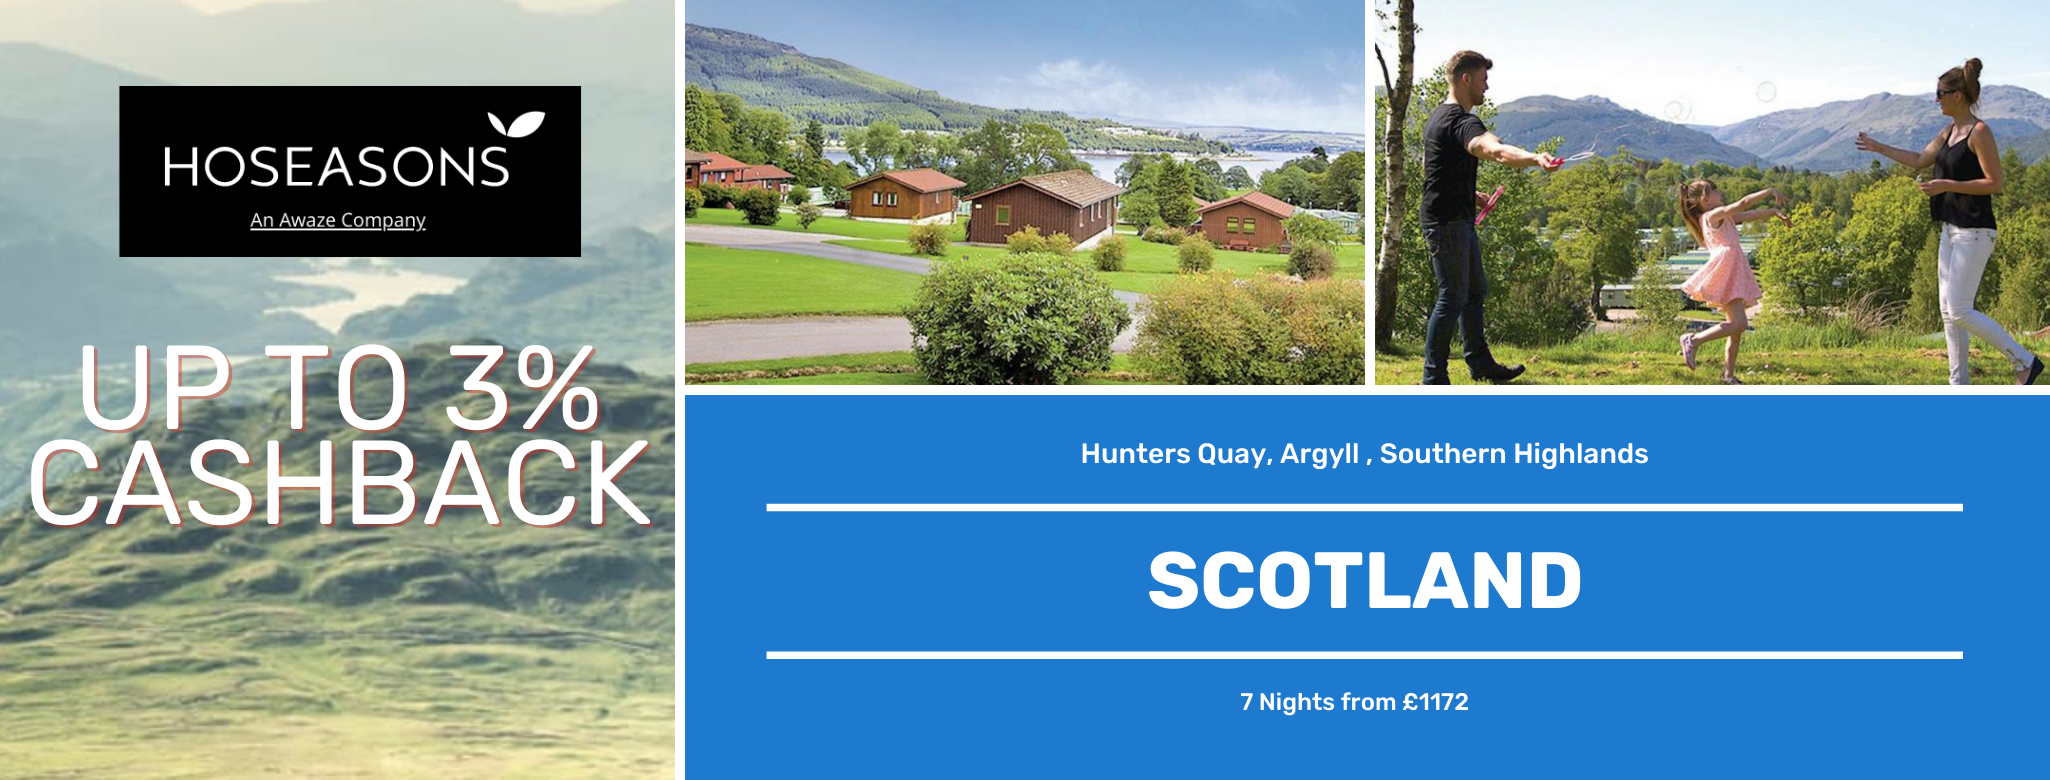 Hoseasons Scotland Up to 3% Cashback